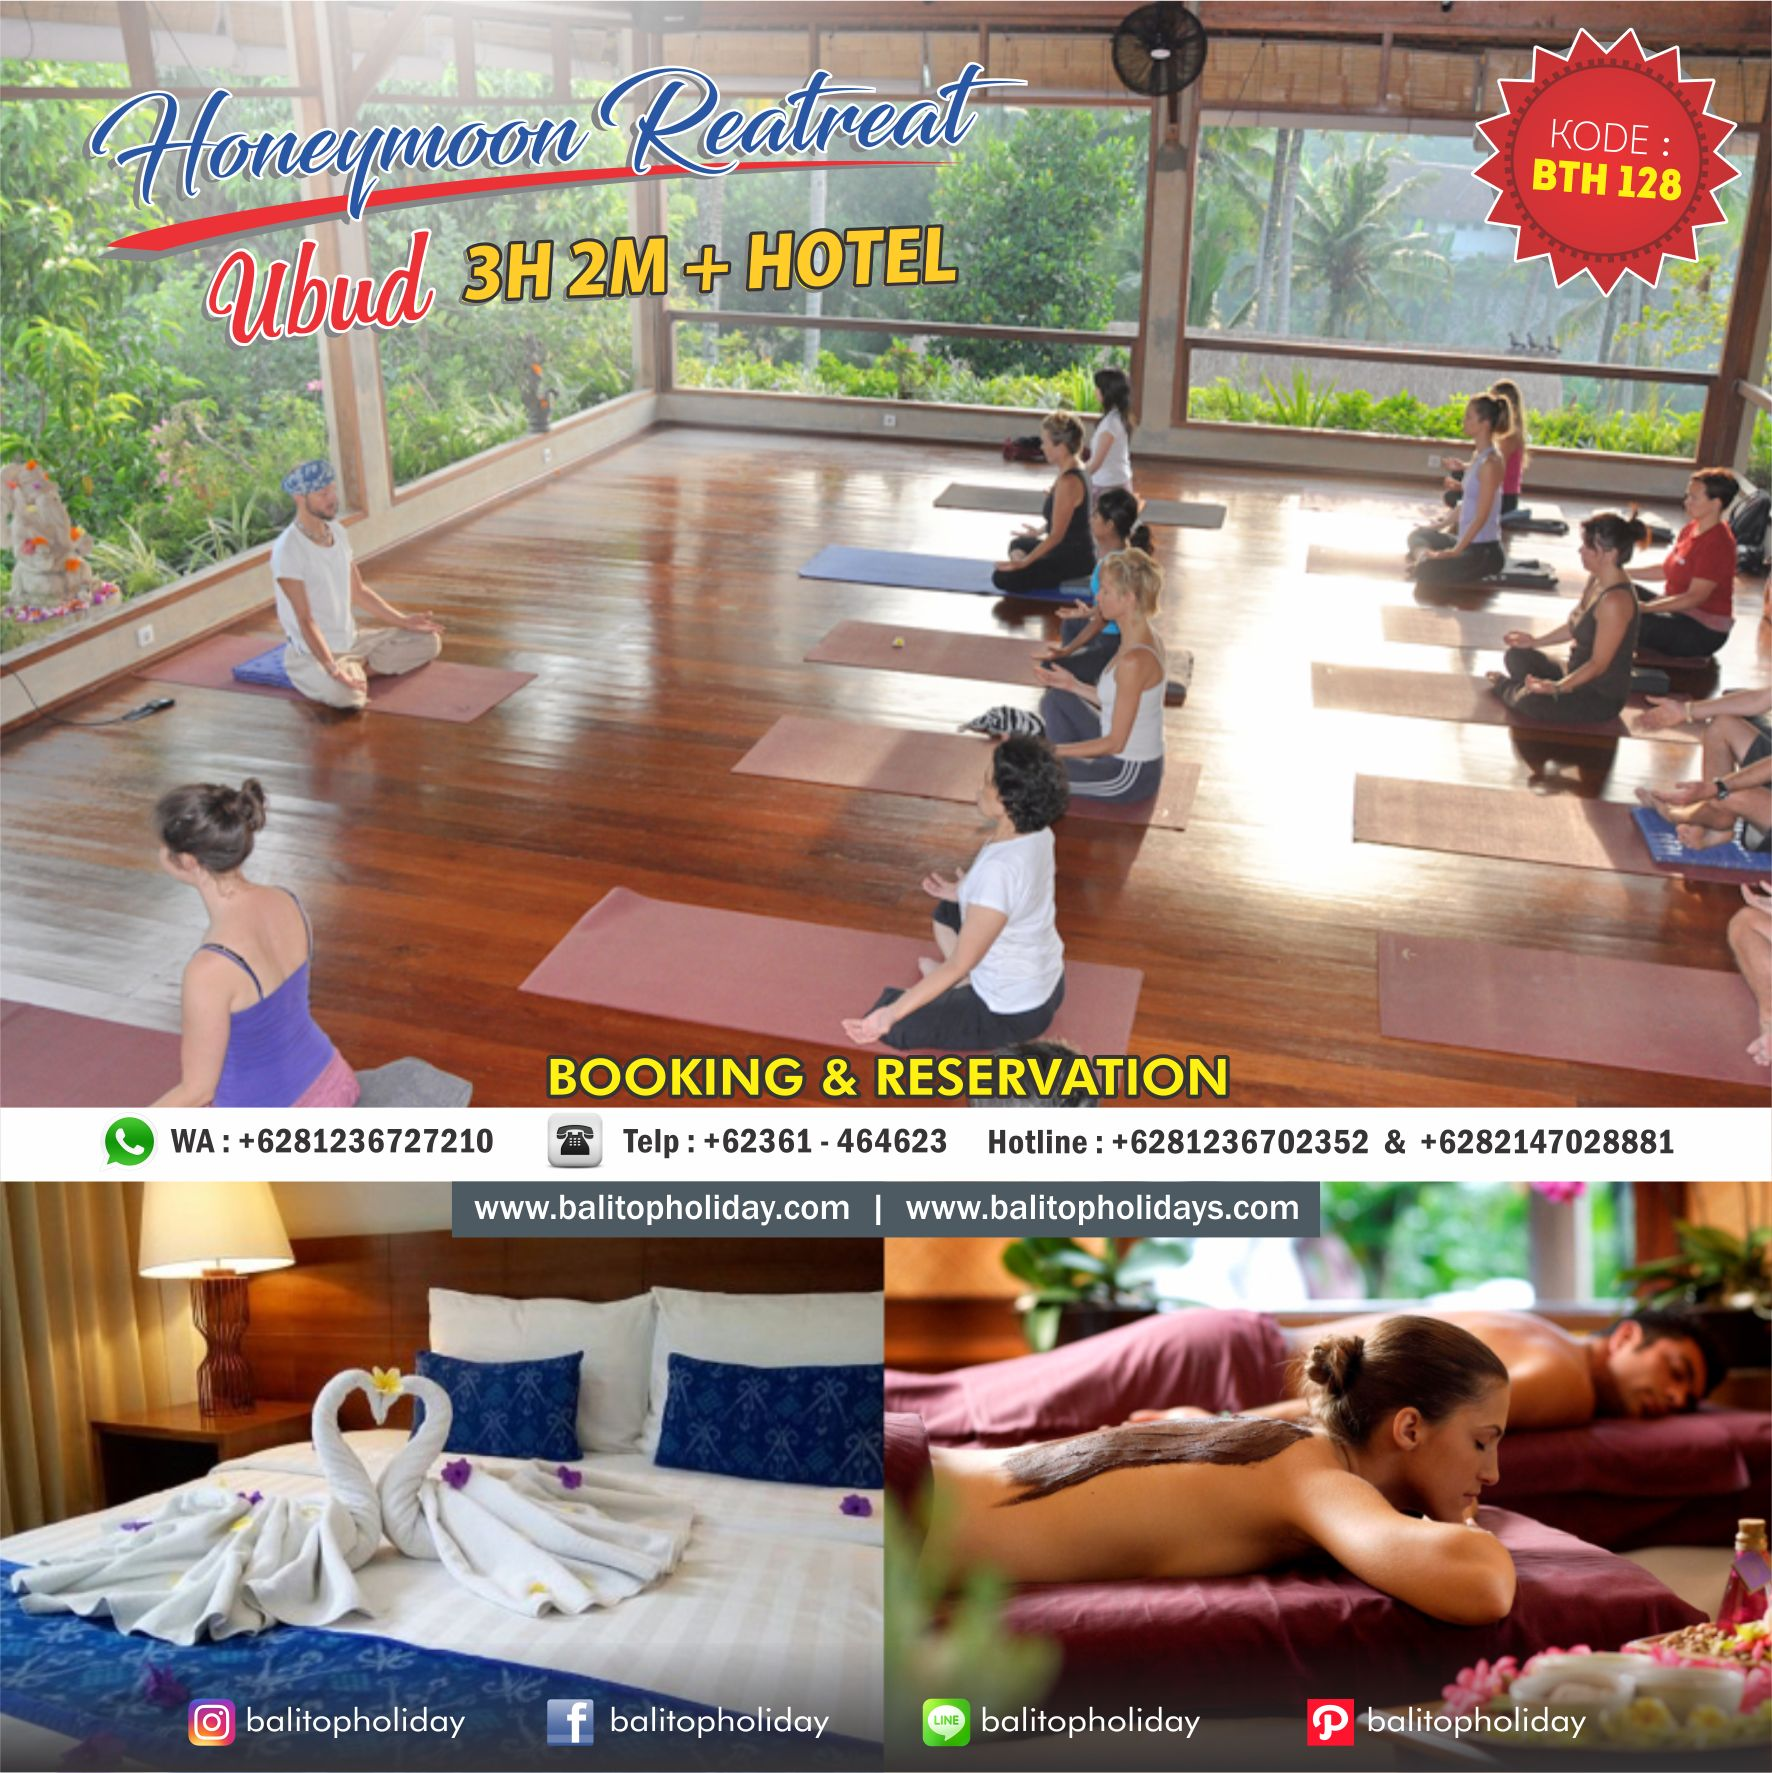 paket honeymoon bali retreat